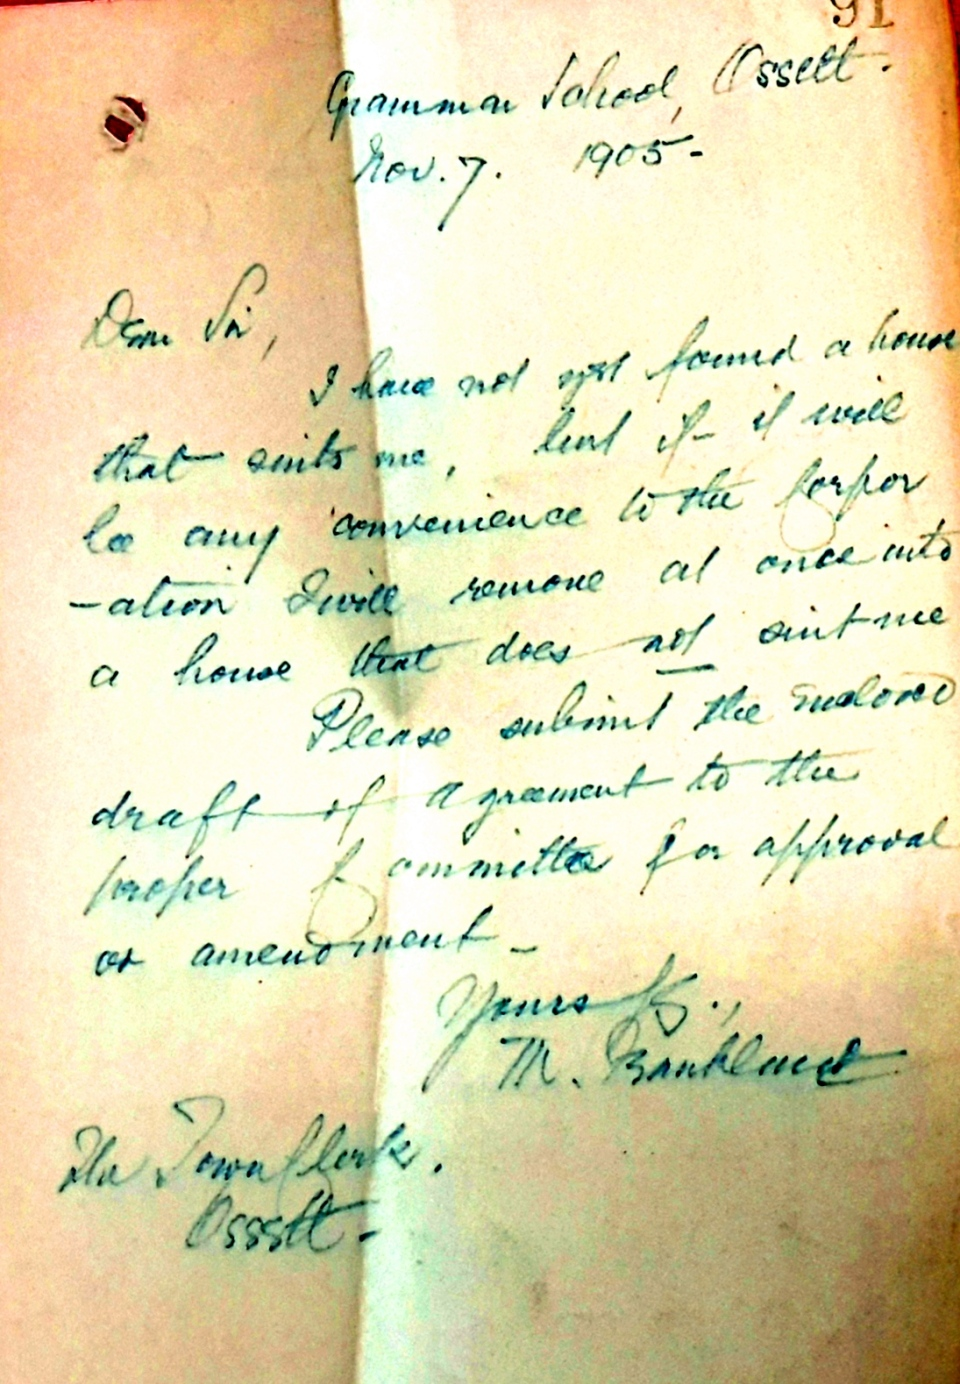 Letter re headmasters house 11.35.00